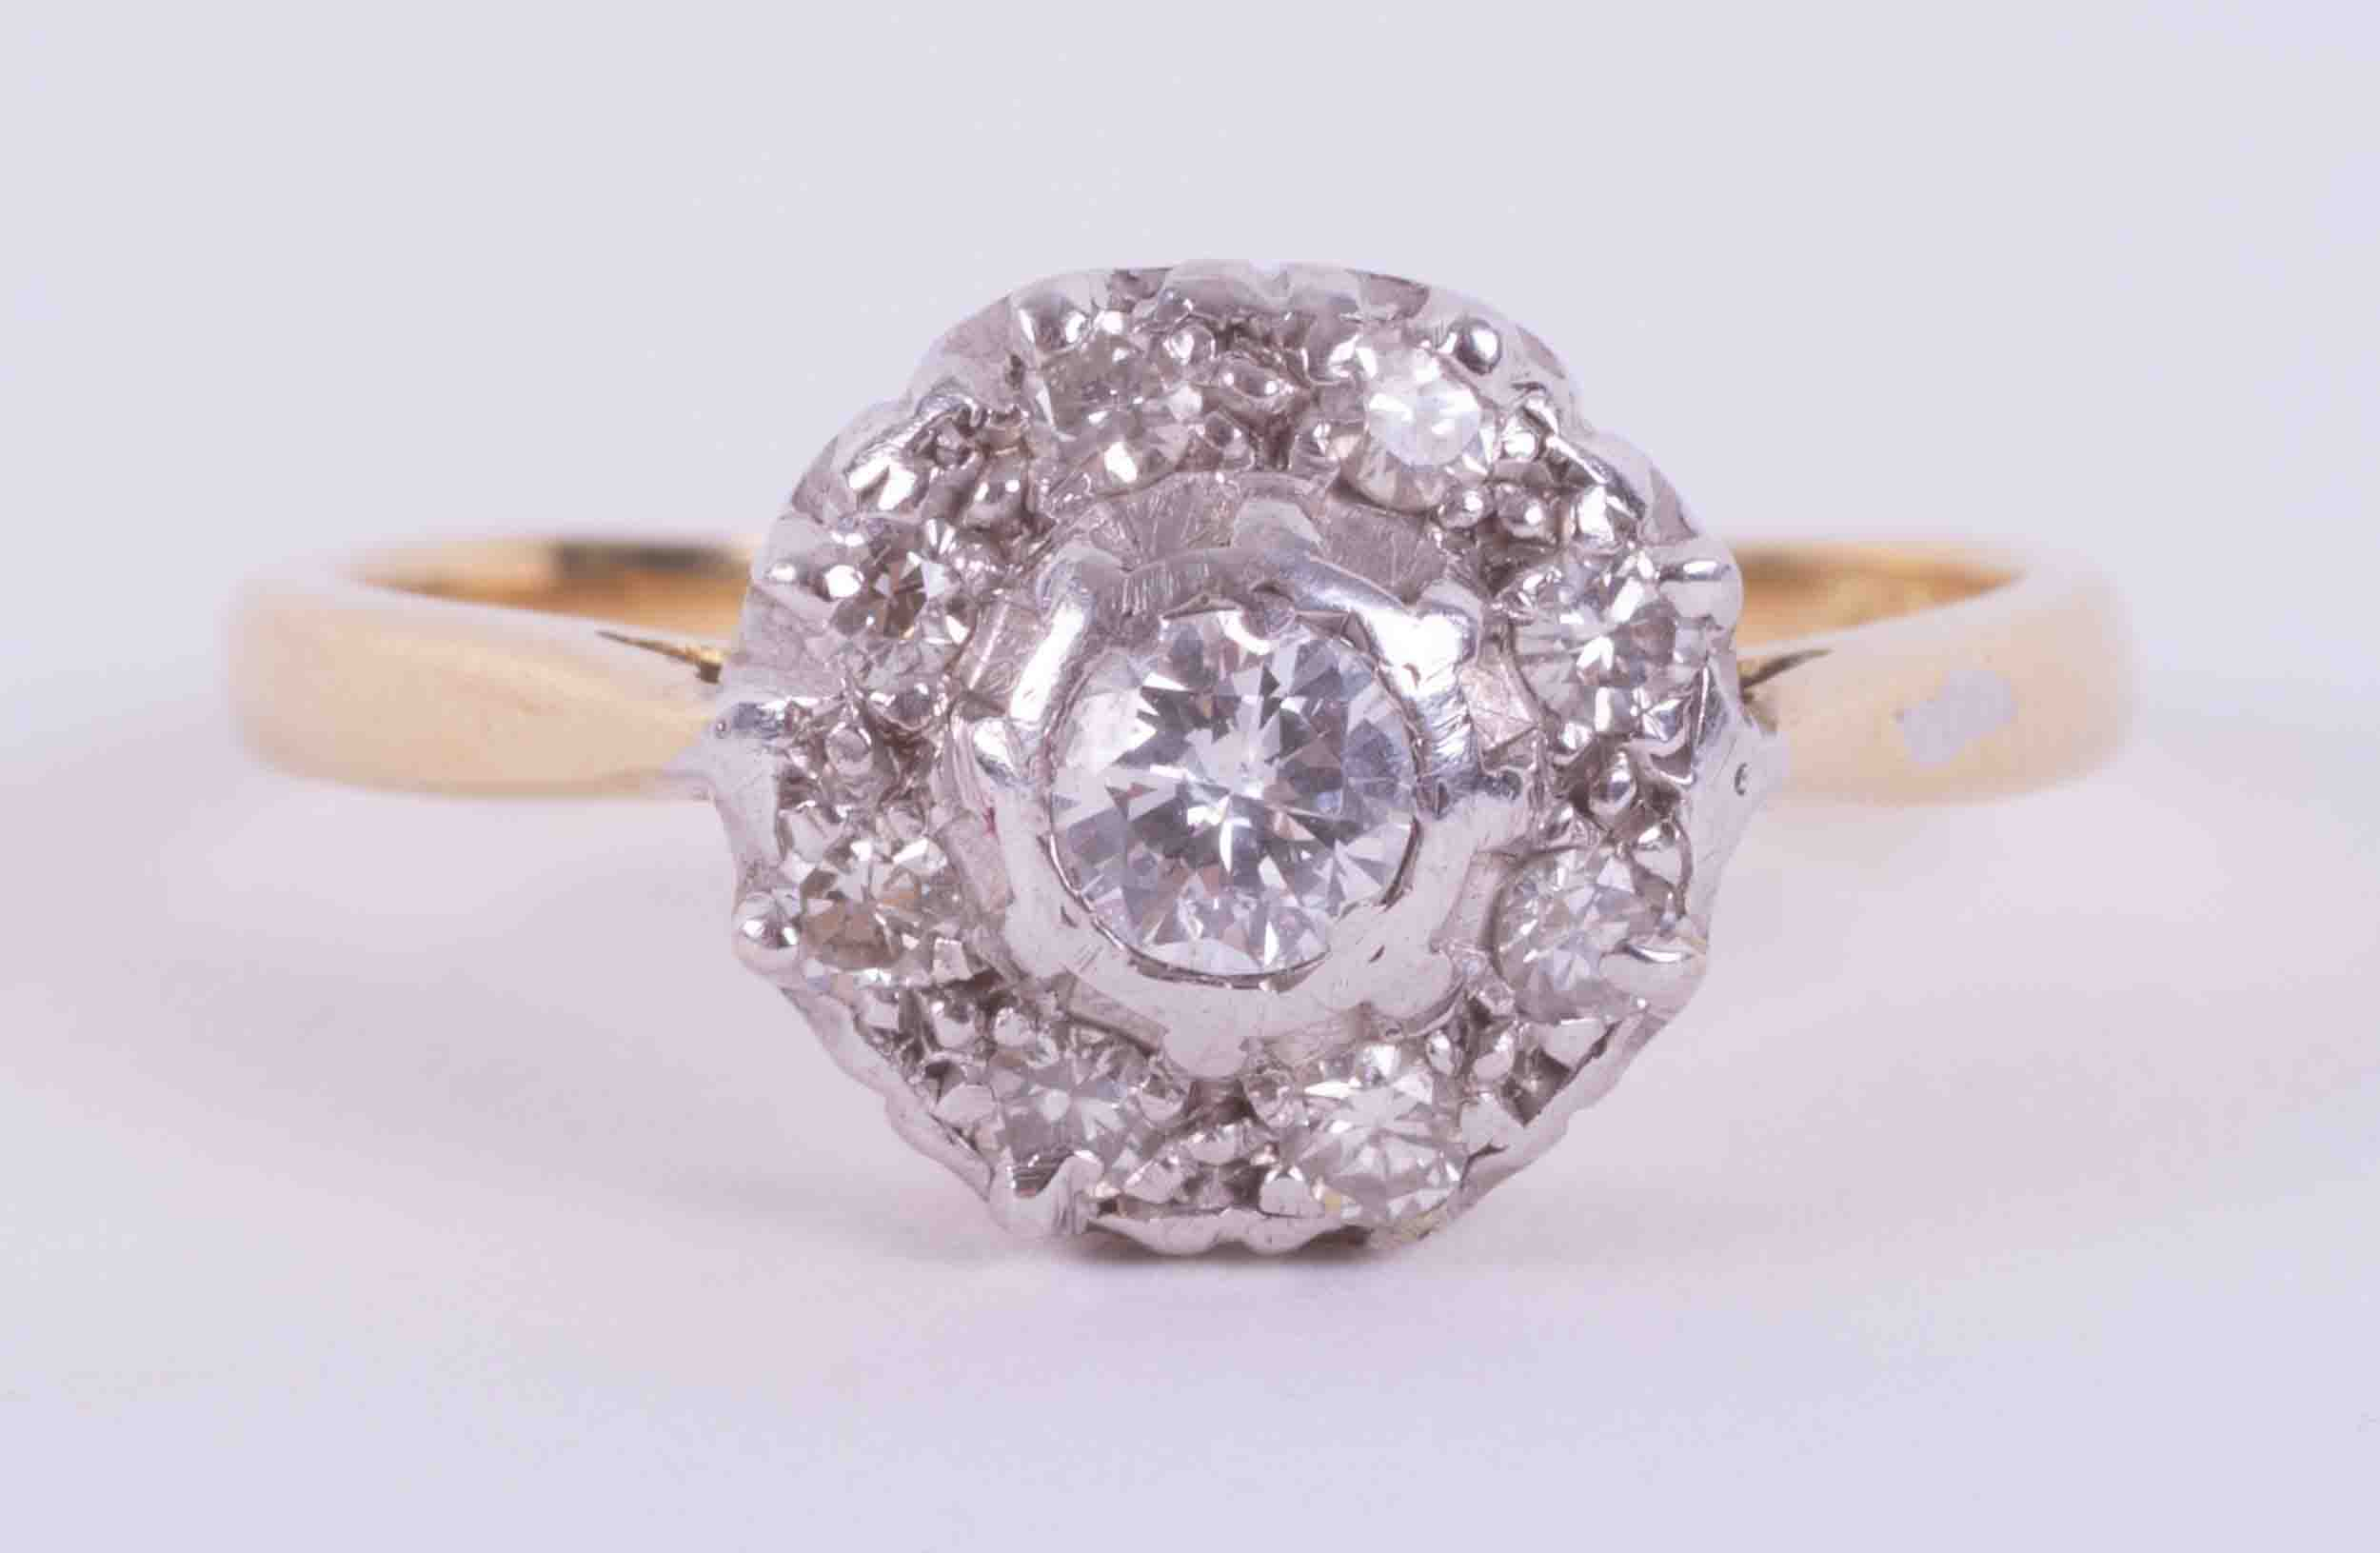 An 18ct yellow & white gold flower style cluster ring set with approx. 0.15 carats of round cut